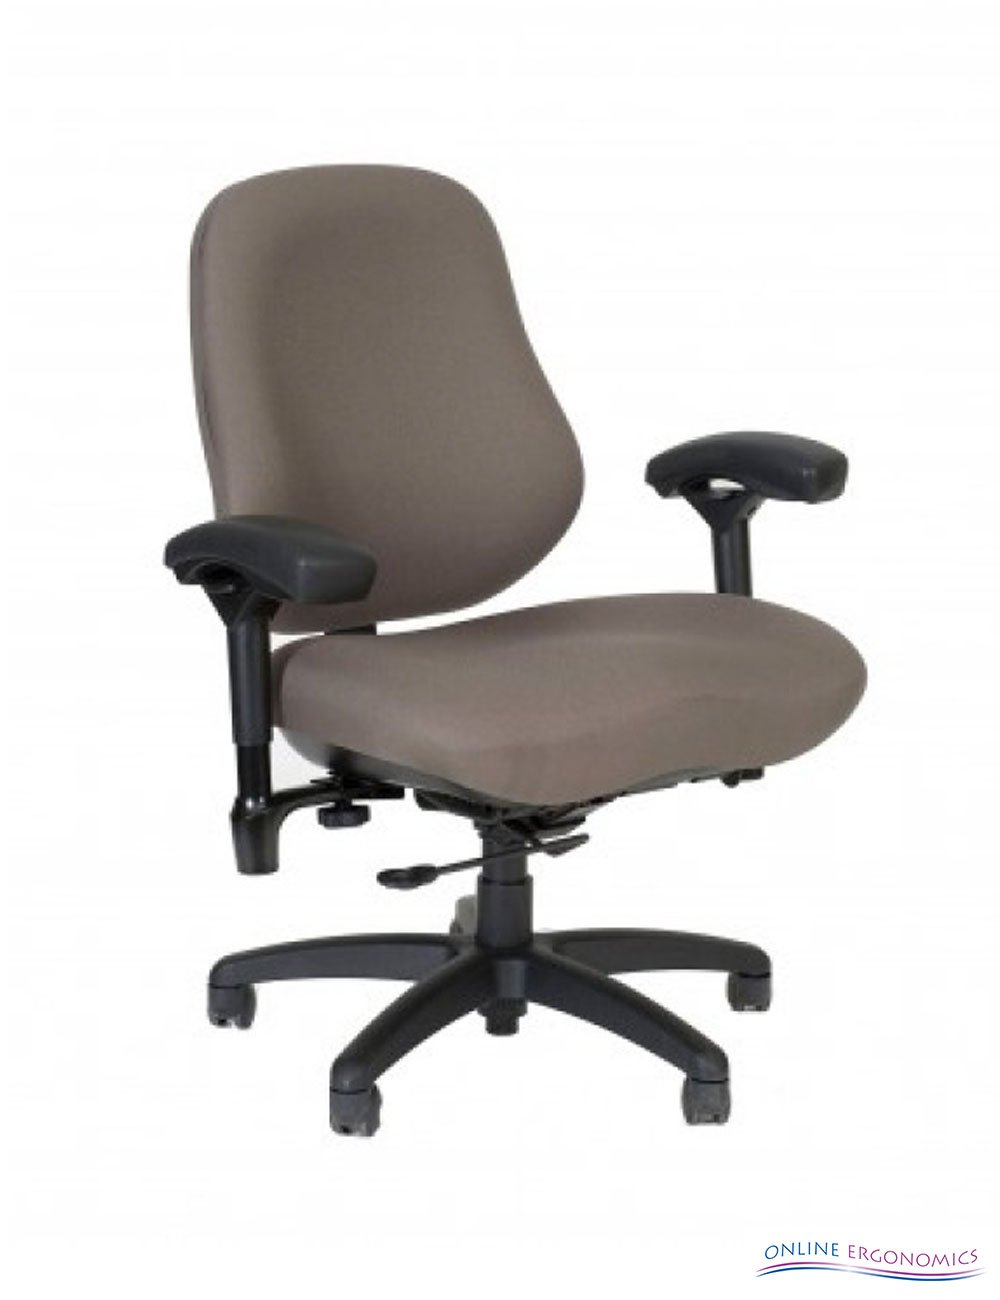 BodyBilt Chairs